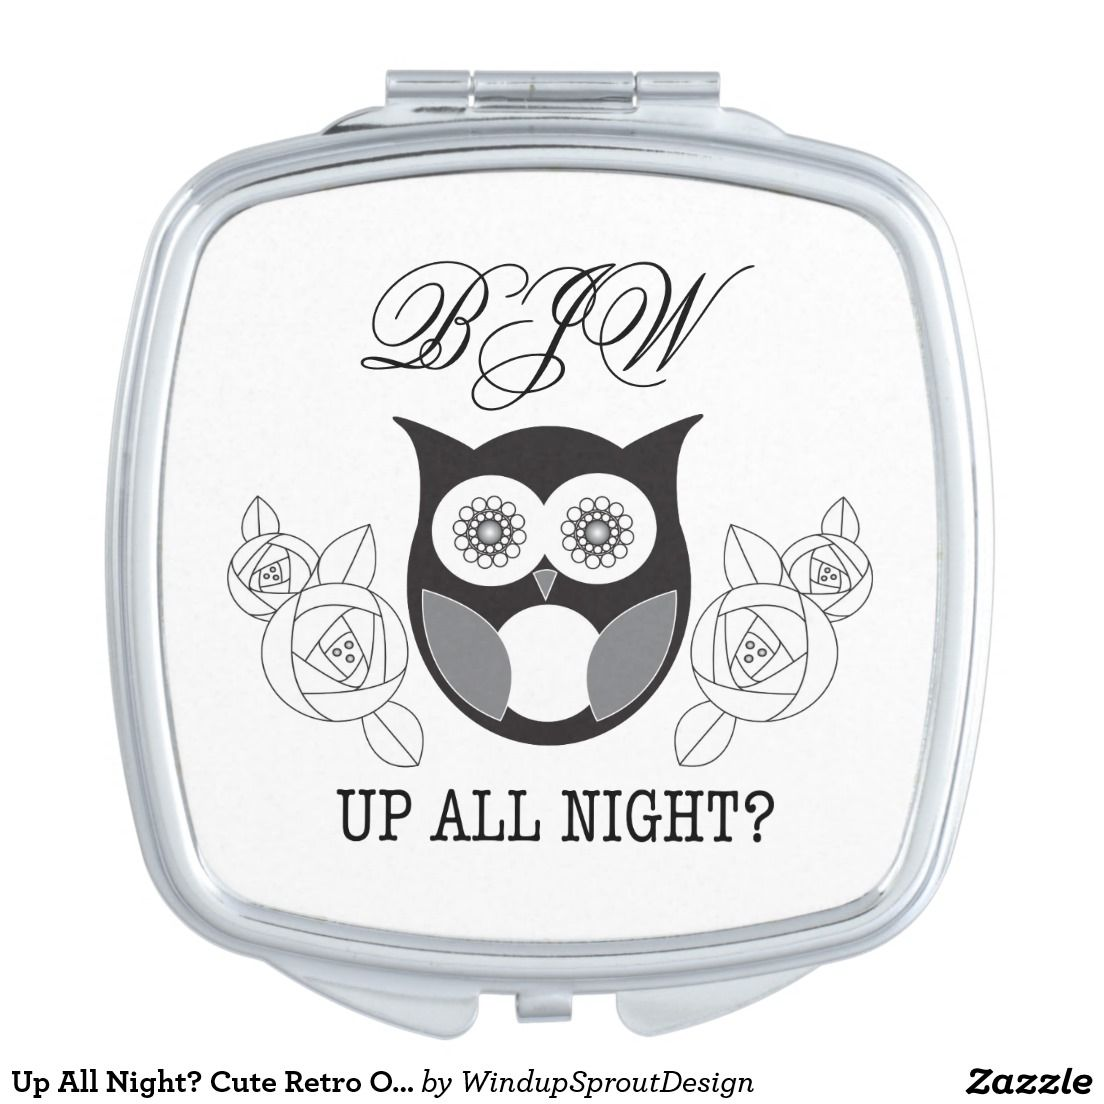 Up All Night? Cute Retro Owl and Rose Monogram Pretty Modern Compact Mirror #makeup #giftforher